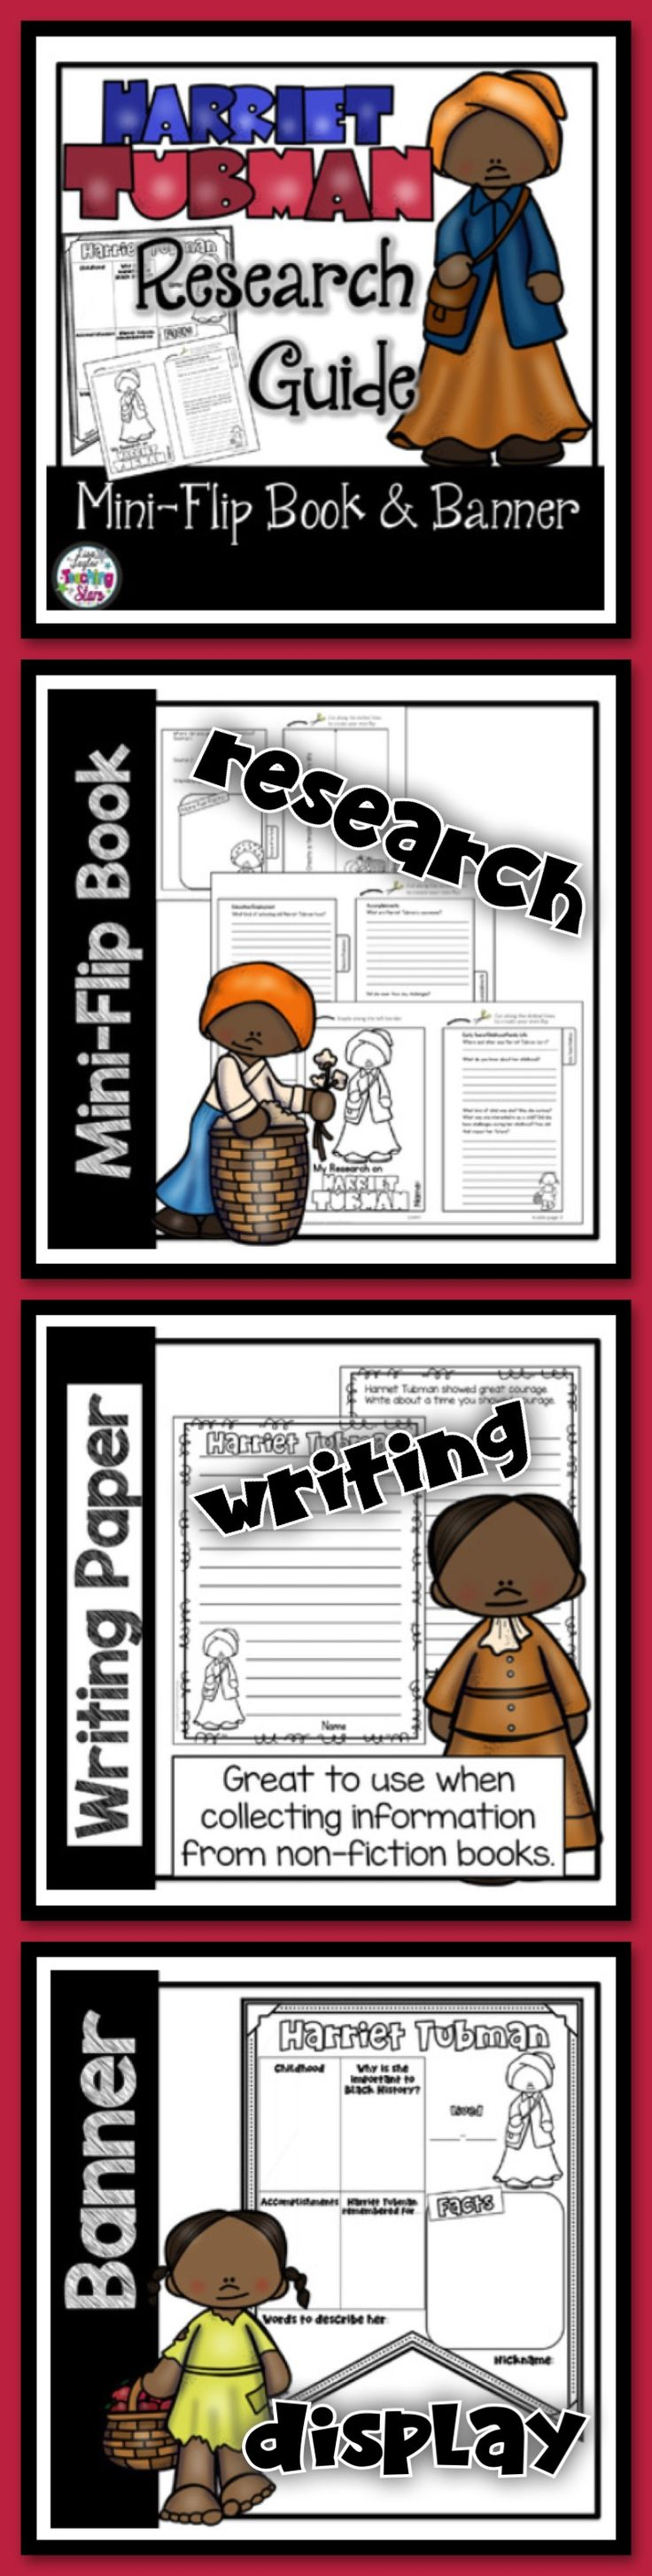 Harriet Tubman Research Guides includes Mini-Book, Lapbook, Banner, Writing Paper, & Interactive Journal Resources that will provide materials students use while researching. Students will collect information on Harriet Tubman and either record their research in their mini-books, Social Studies Interactive Notebook, or Lapbook while they read biographies and other informational text. These resources were designed for grades 3rd-5th to use to organize students' research about Harriet Tubman.